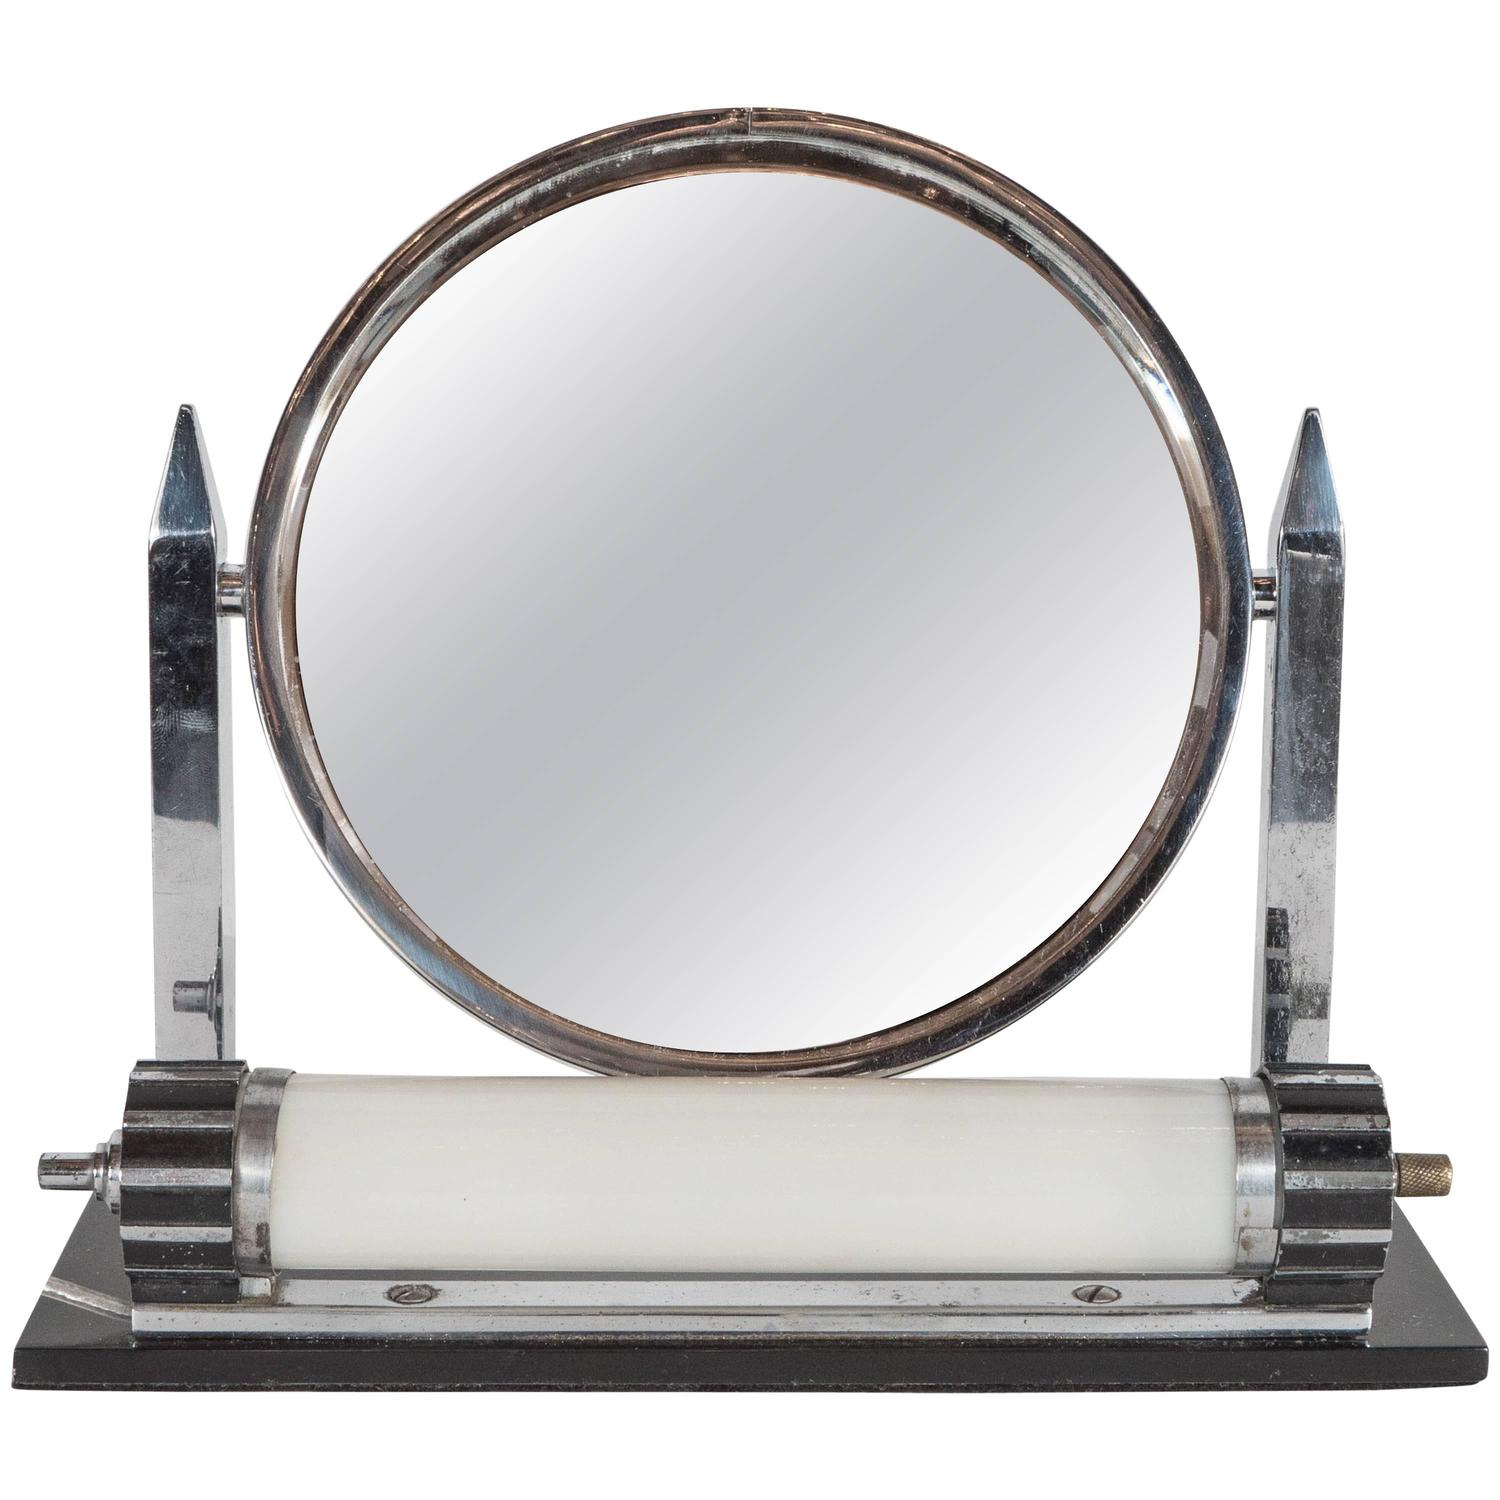 machine age illuminating art deco vanity mirror and light for sale at 1stdibs. Black Bedroom Furniture Sets. Home Design Ideas